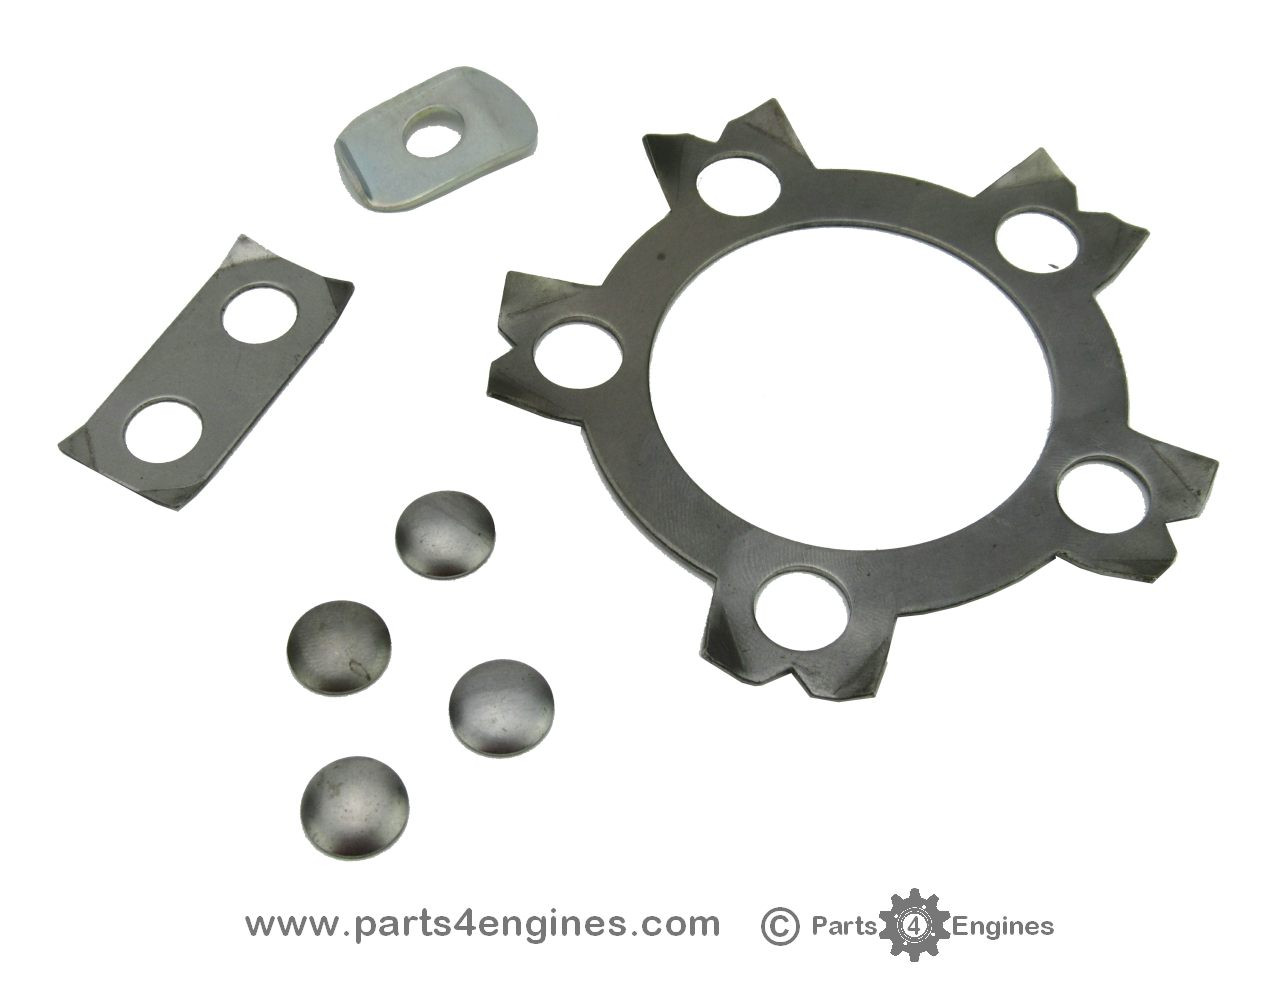 Perkins 4.108 locking tab washer kit  from parts4engines.com